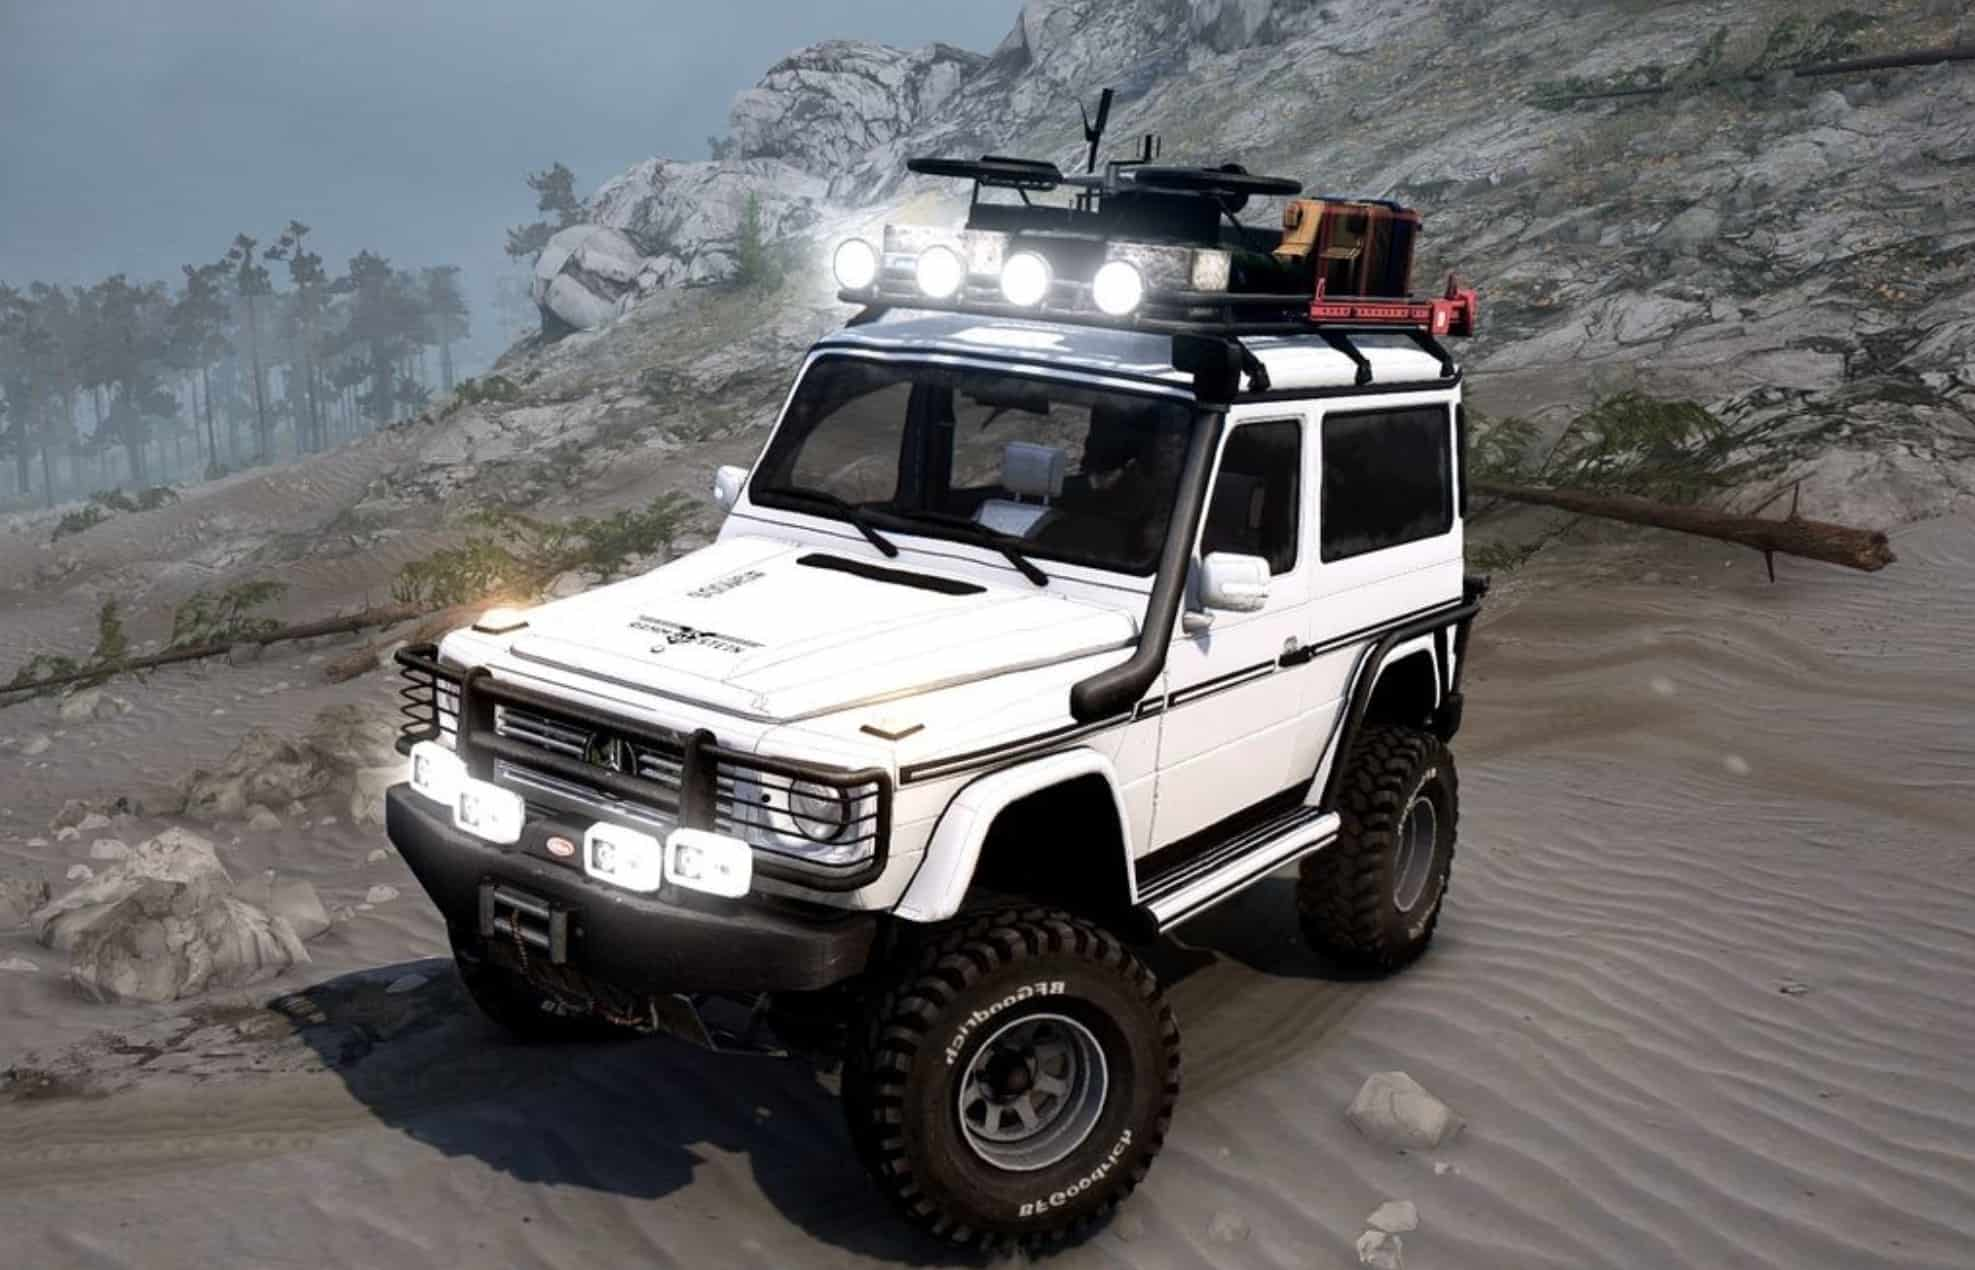 Mercedes benz g500 tourist version spintires mudrunner mod for Mercedes benz g500